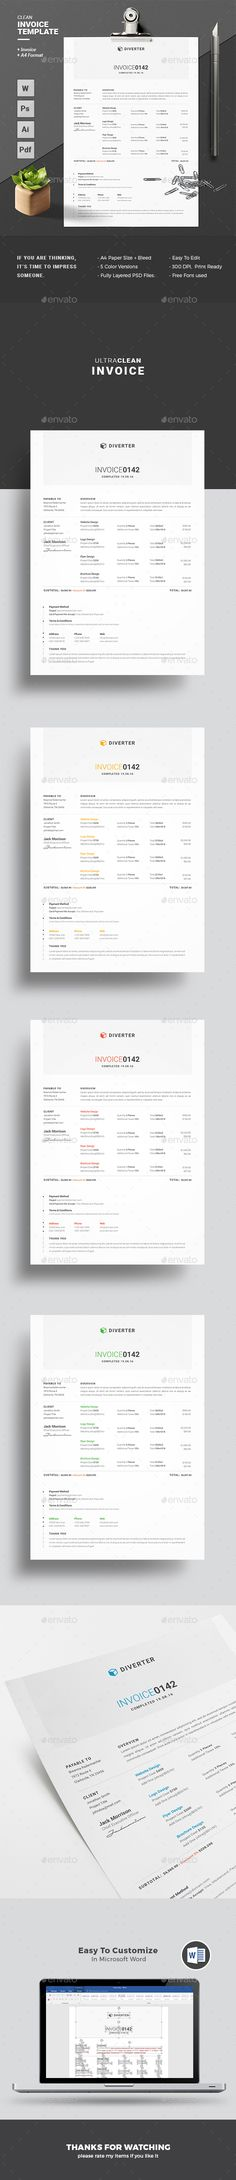 Invoice Excel Font logo and Logos - invoice logo